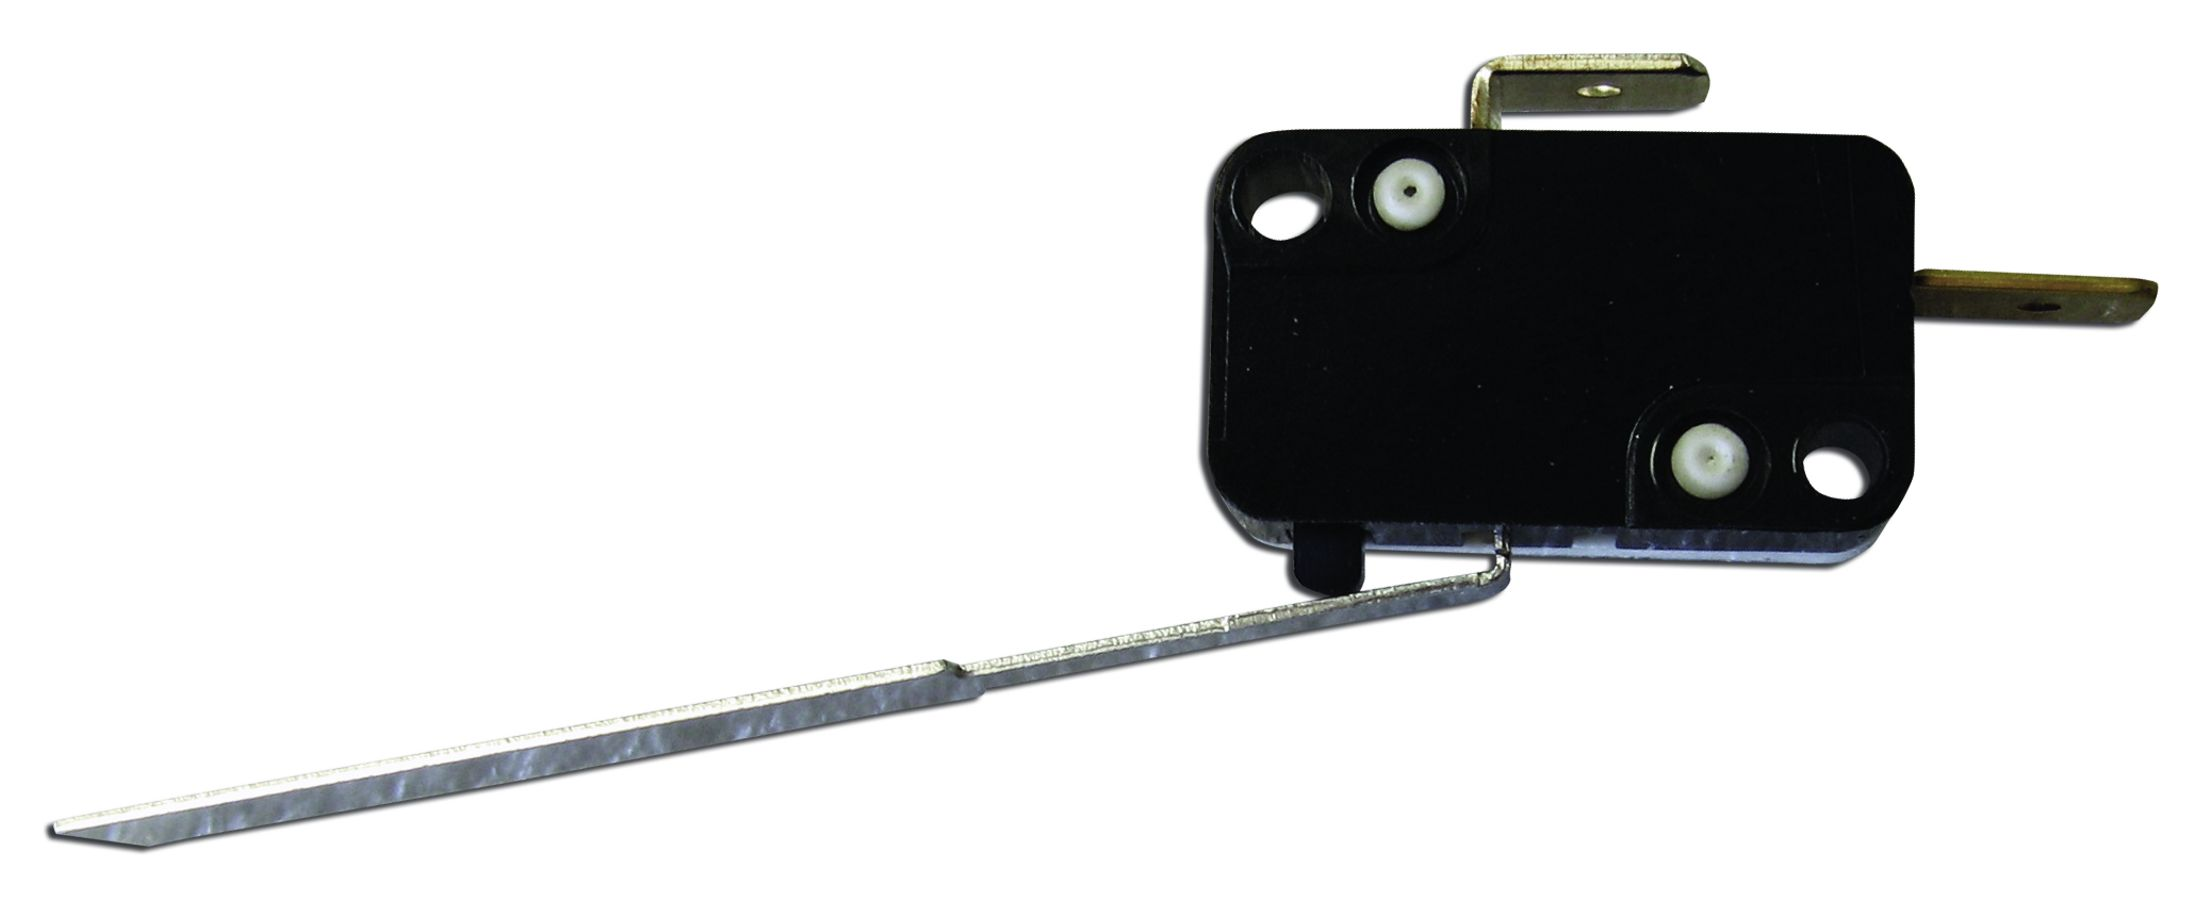 314346000 M.C. Enterprises Furnace Limit Switch Use On Duo-Therm